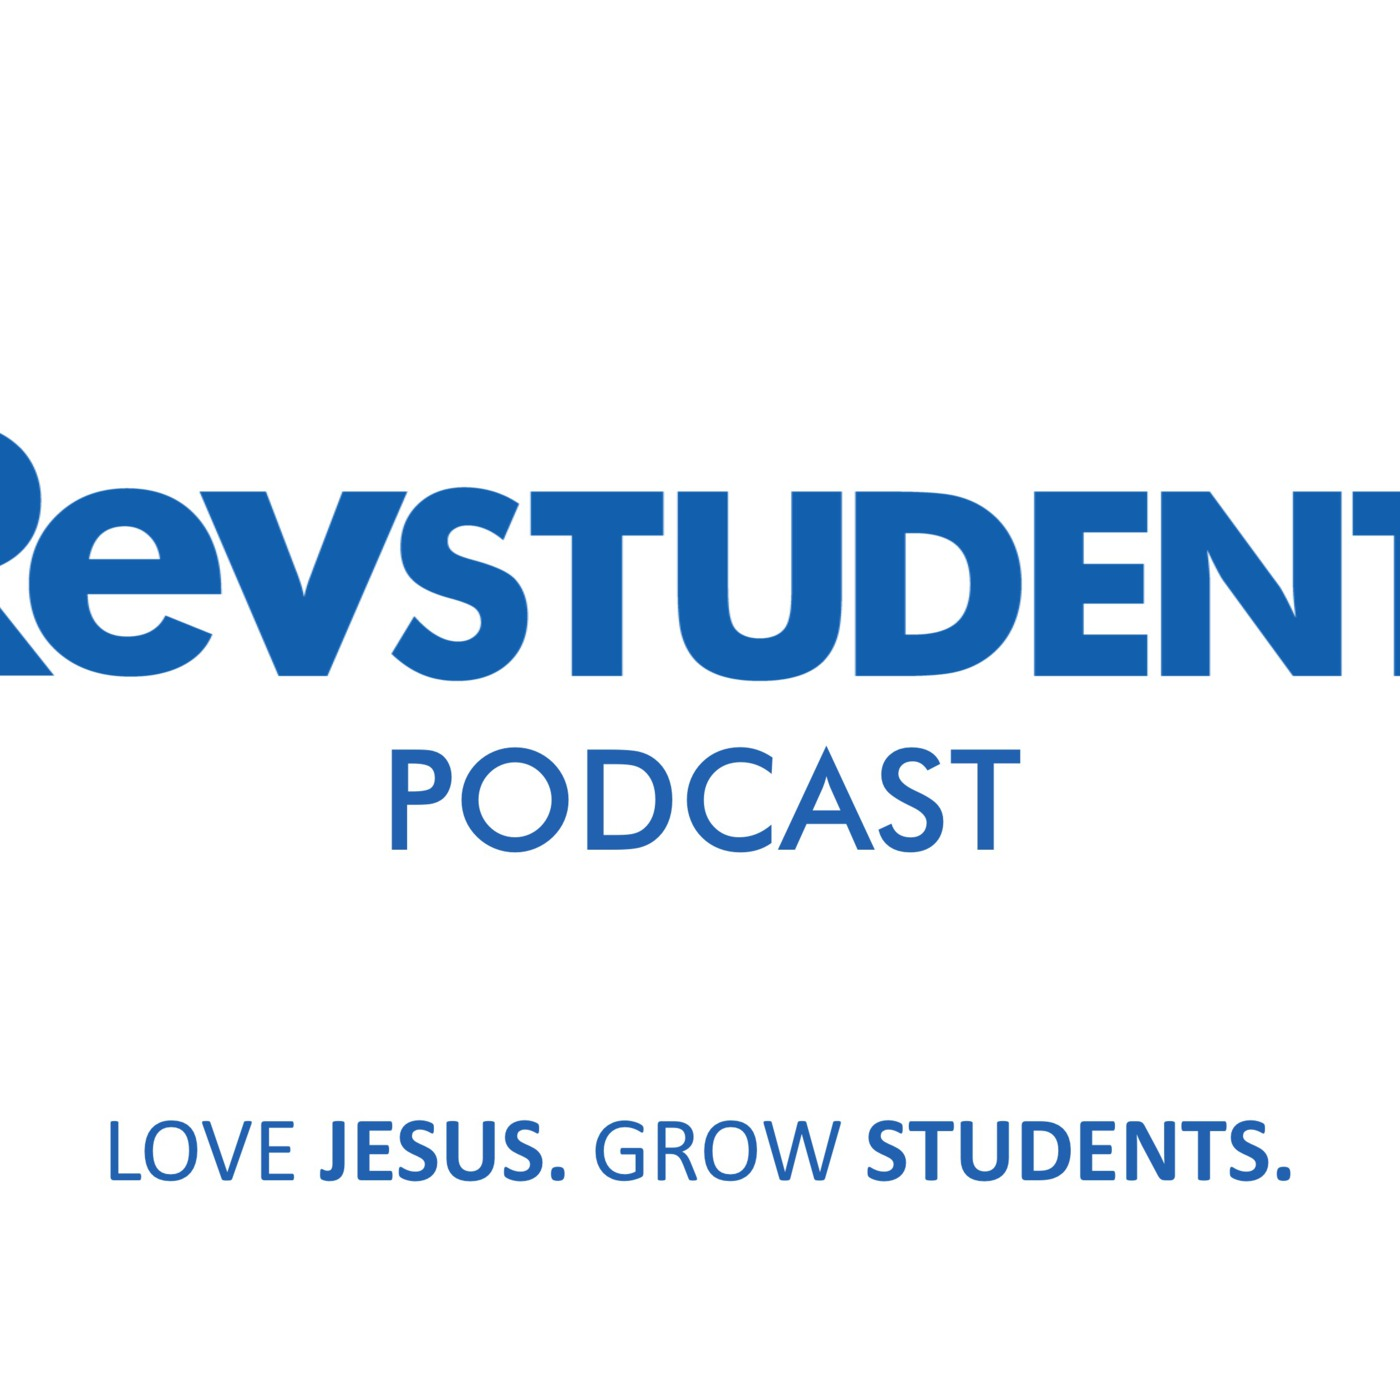 Revstudents Podcast